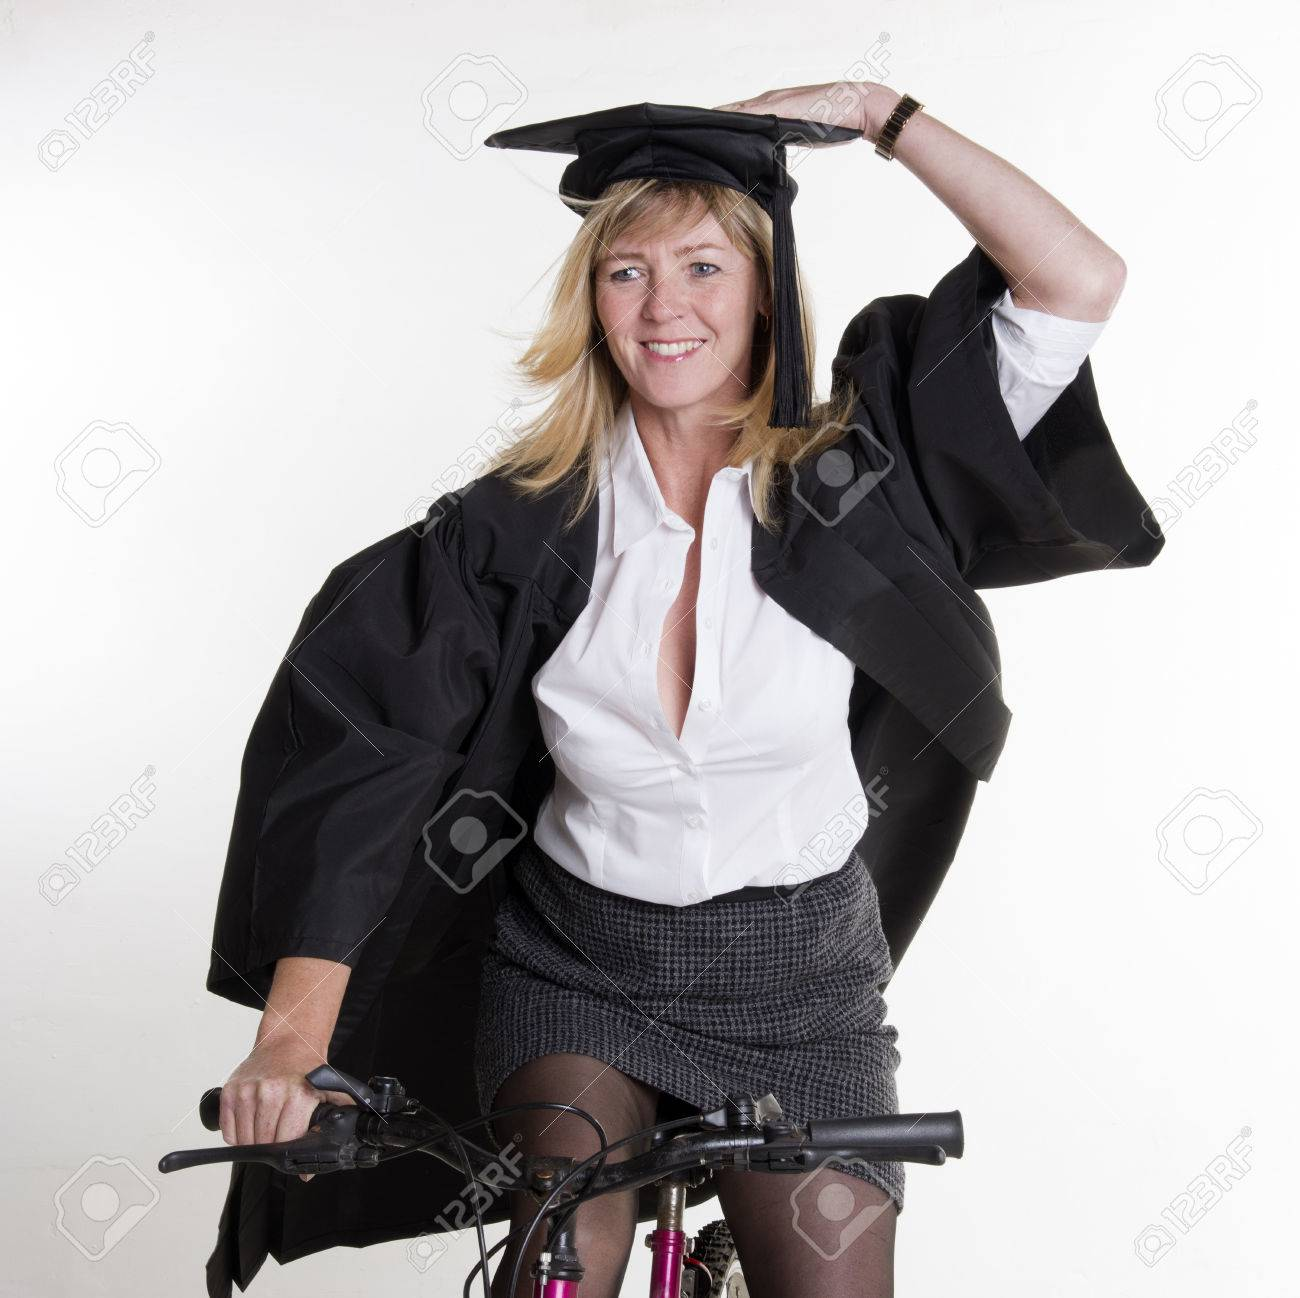 mature female student riding a bicycle wearing cap and gown stock